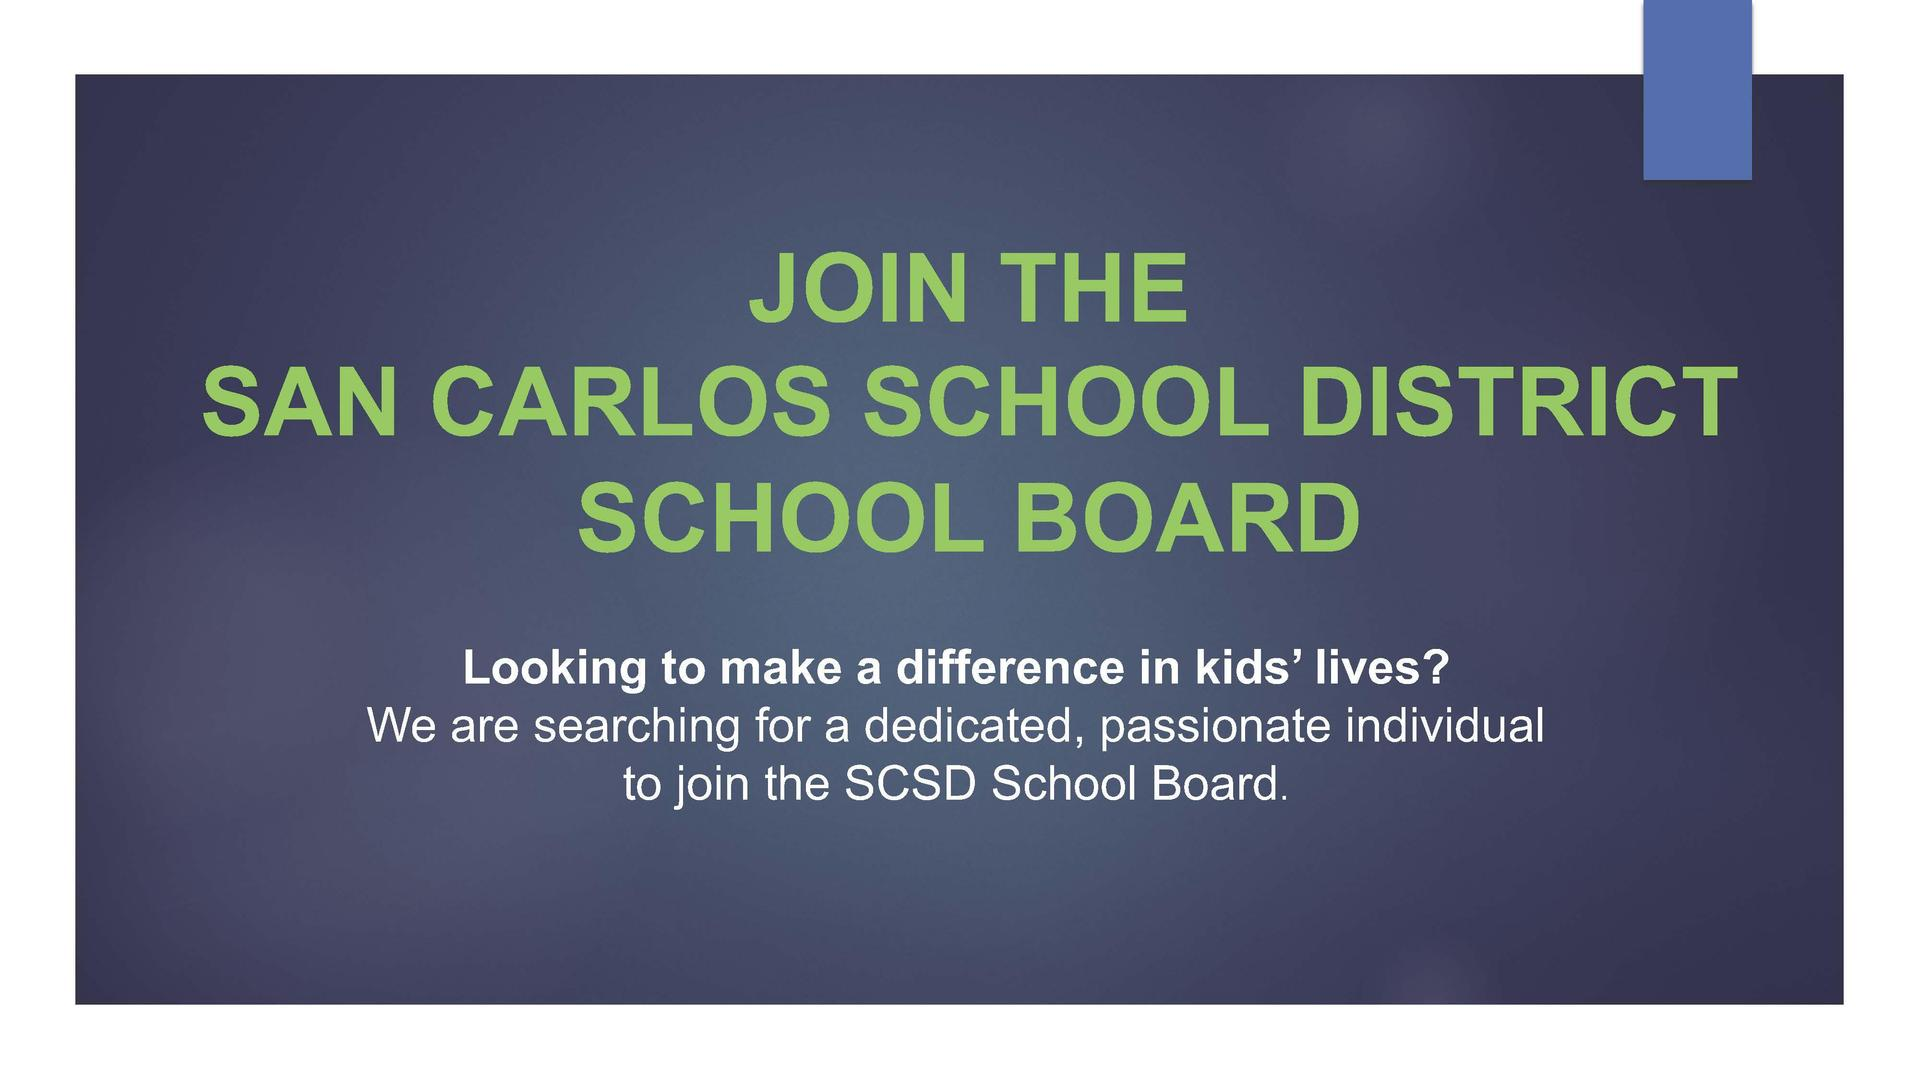 Join SCSD School Board Add